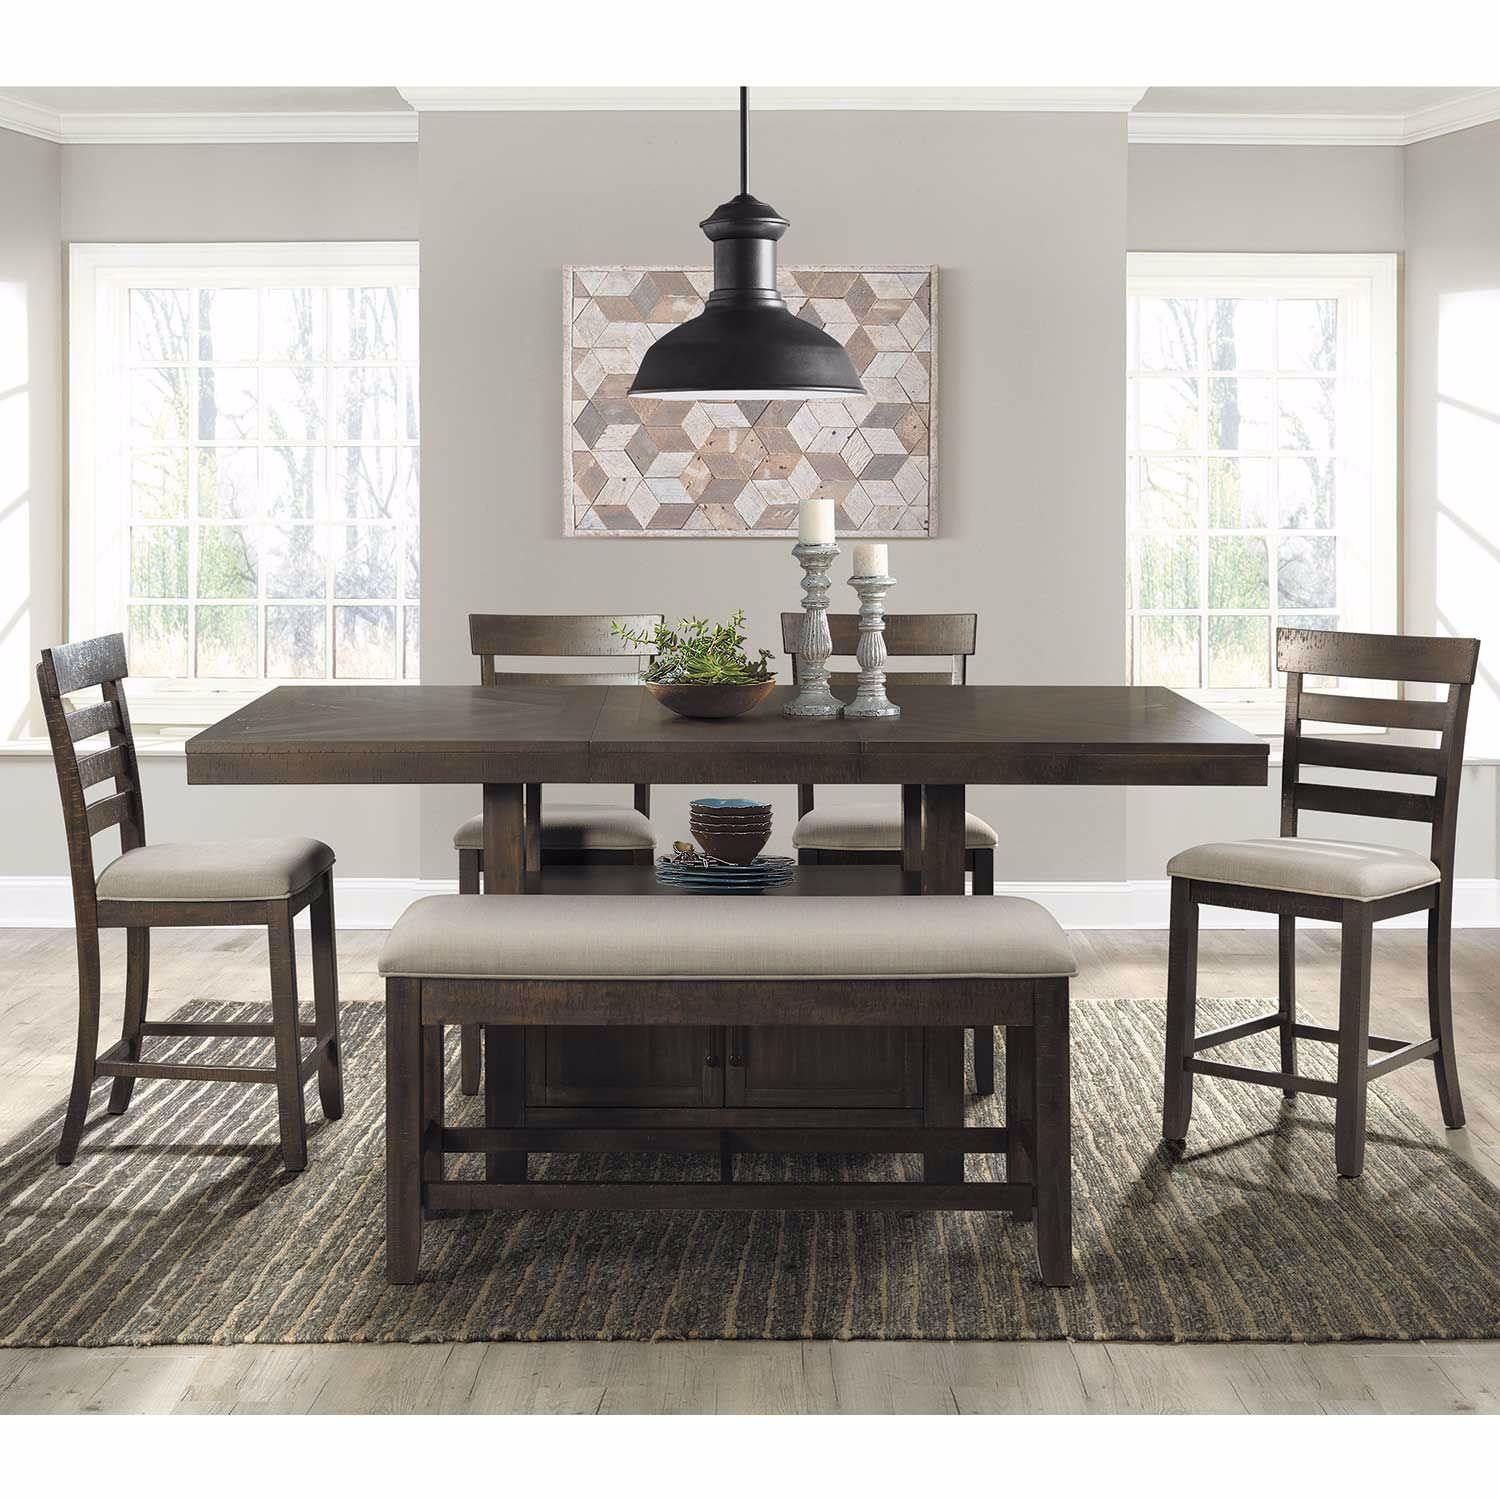 Steve Silver MarseilleMarble Top Counter Table